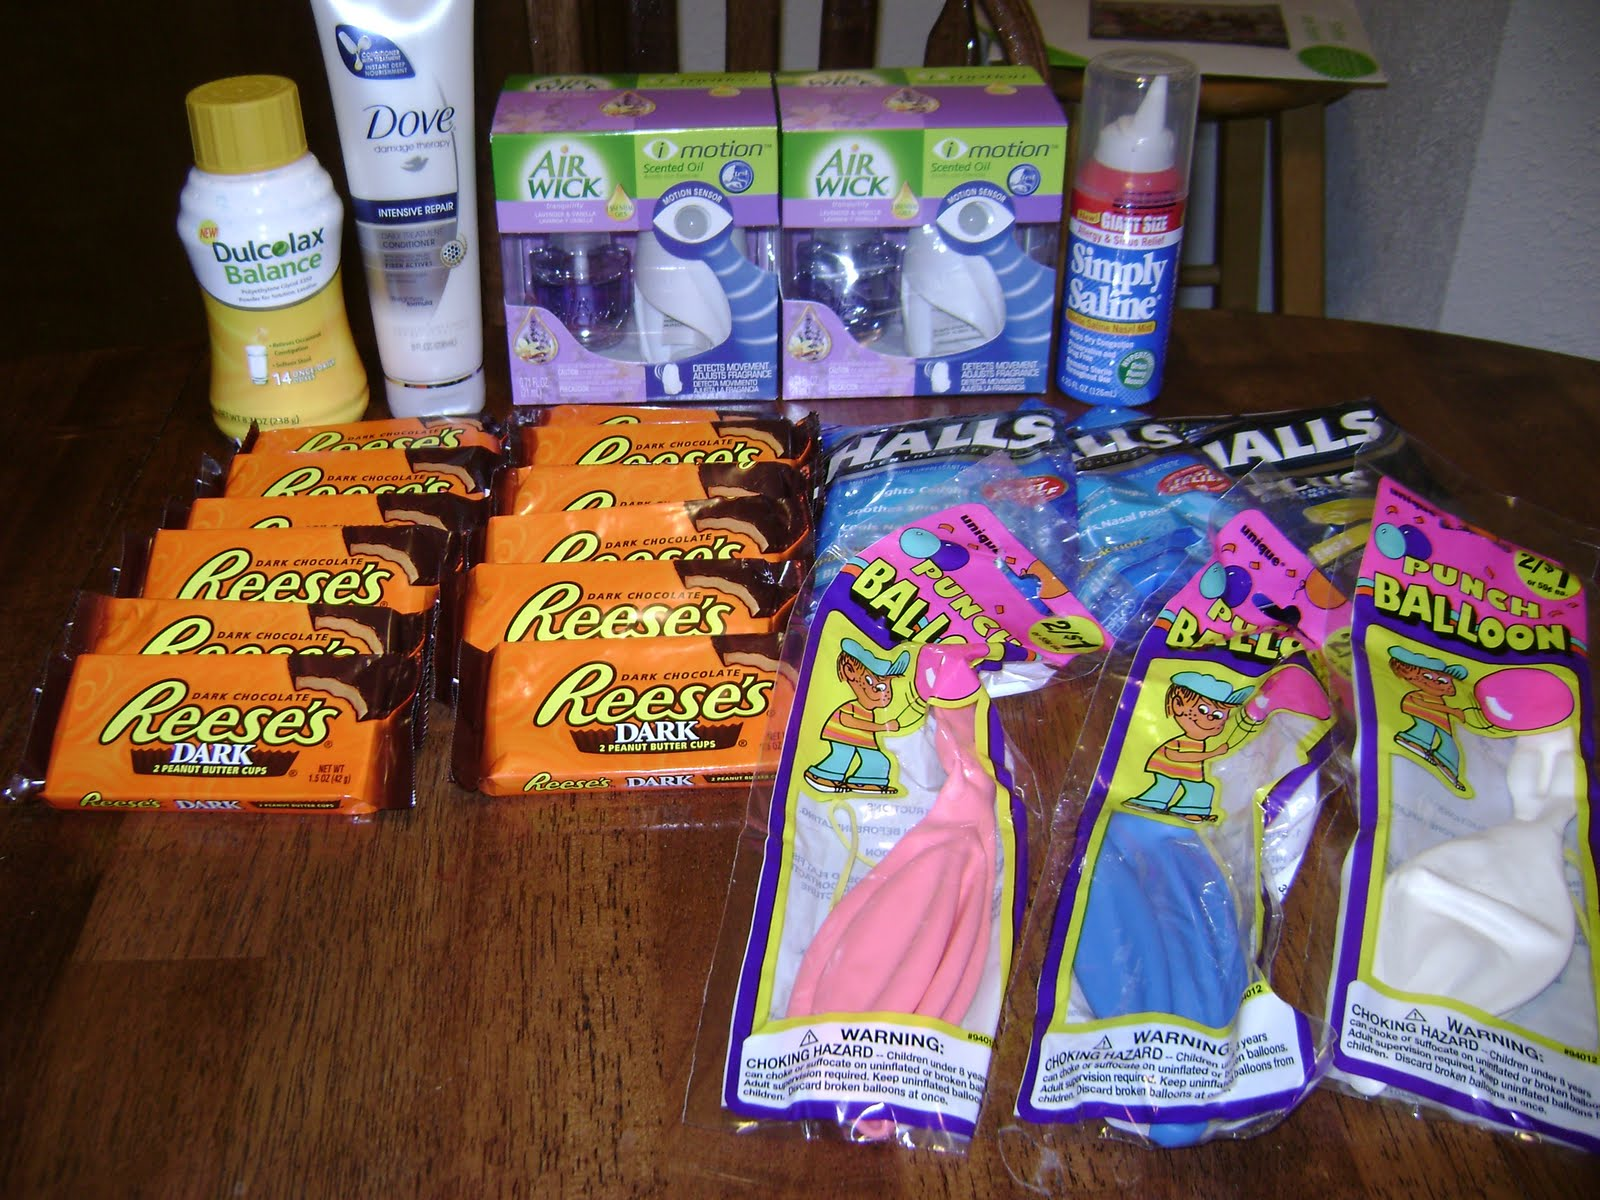 2db0b4030ad4b1 I had a few RR I needed to roll, so I stopped into Walgreens to run just a  FEW of the deals going on this week. Wow, looks like Walgreens is the ...